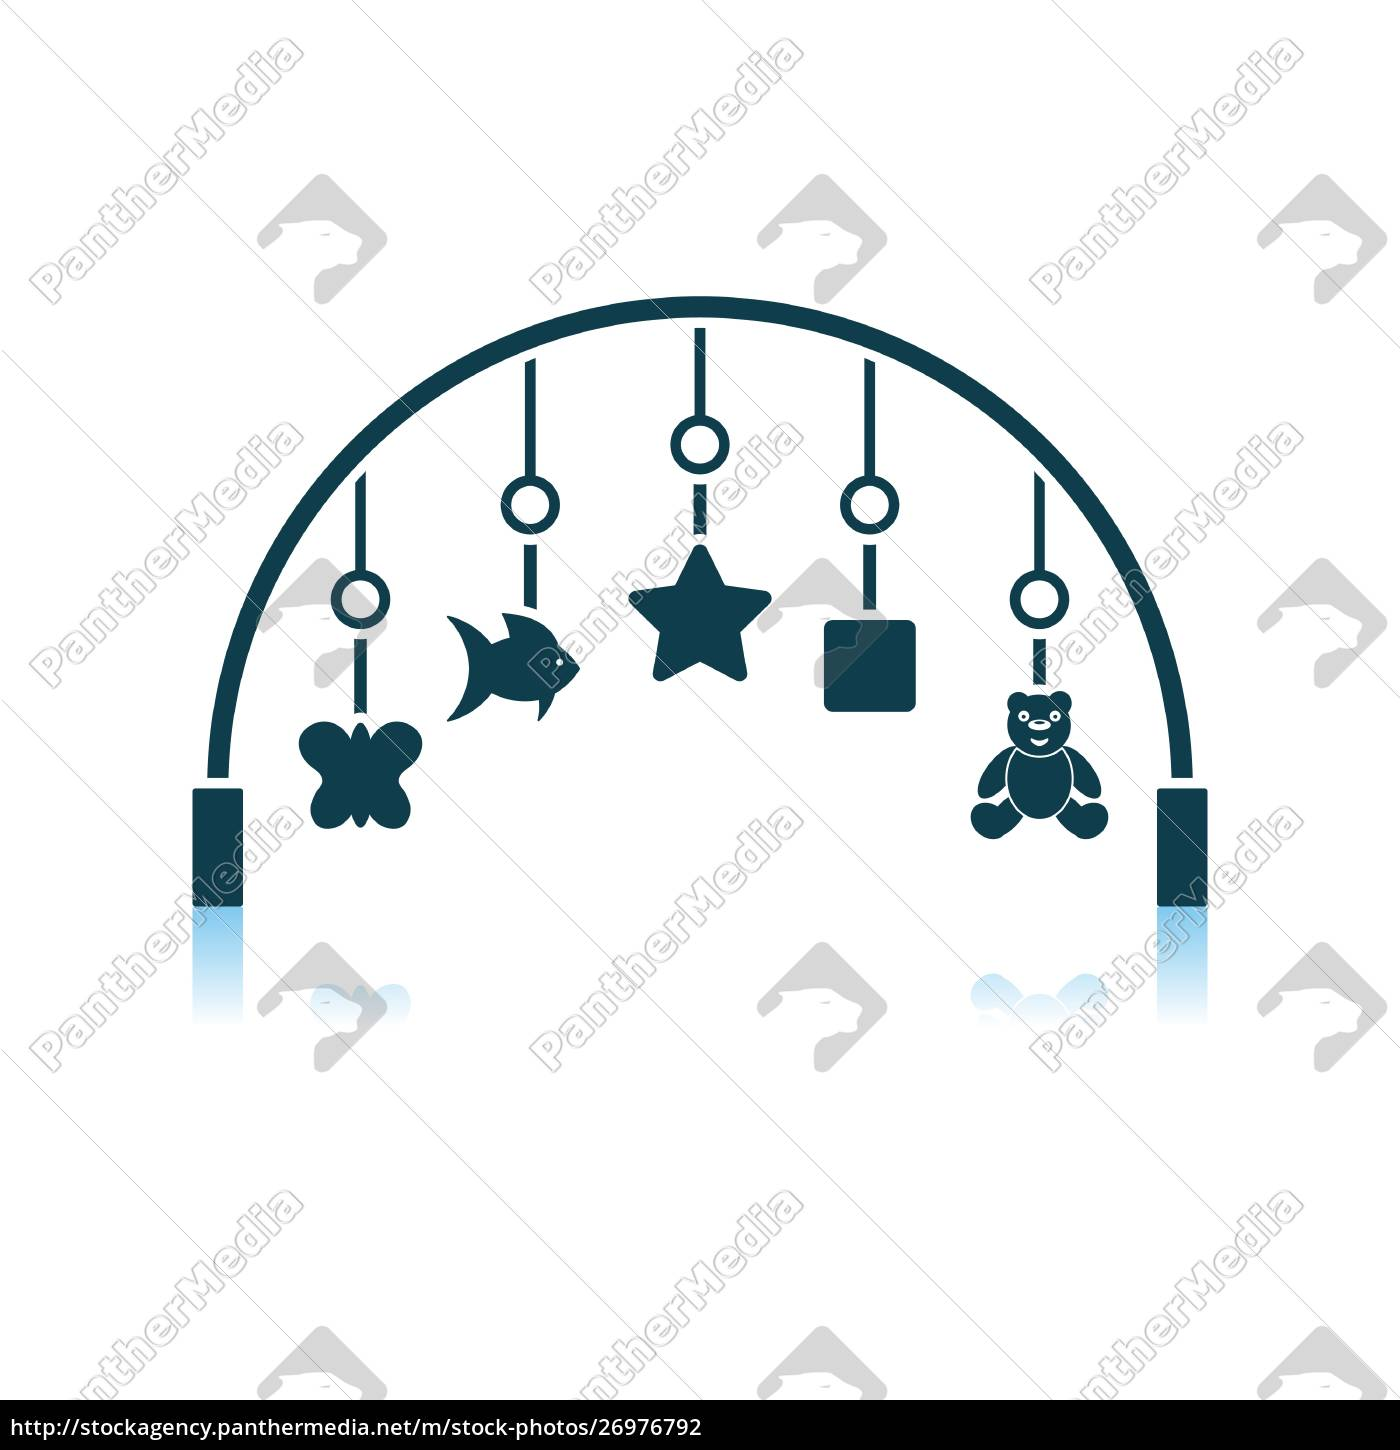 baby, arc, with, hanged, toys, icon - 26976792